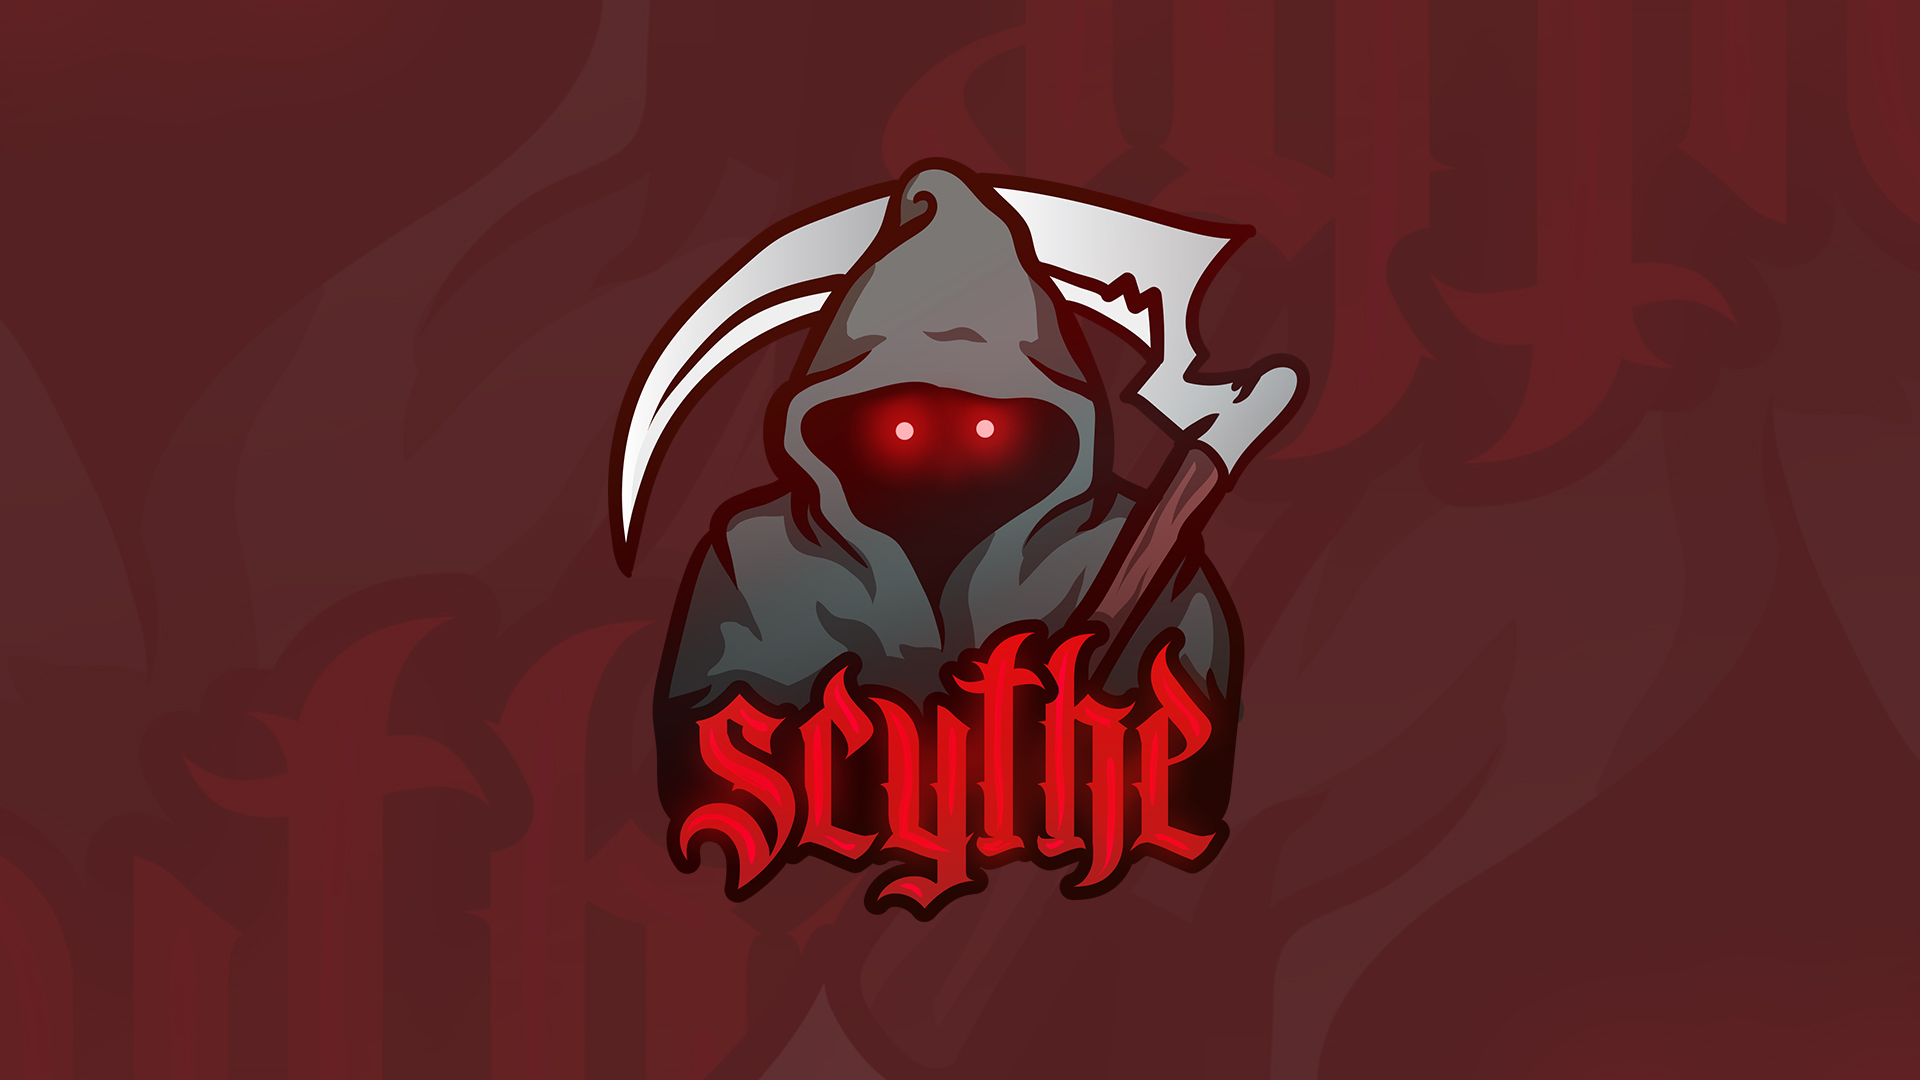 Scythe Torrent 1.6.85 incl Mac Os Game Free Download 2020